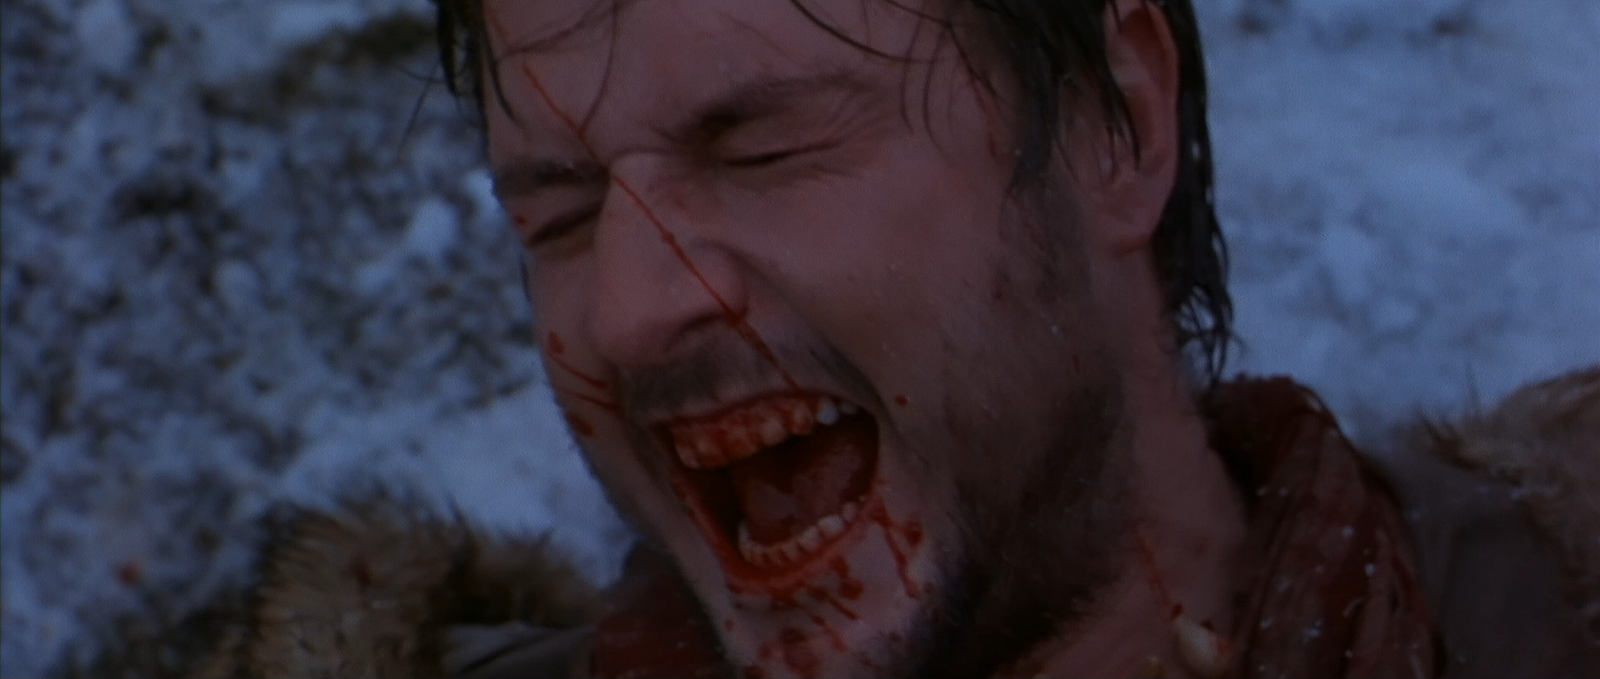 David Arquette in Antonia Bird's Ravenous